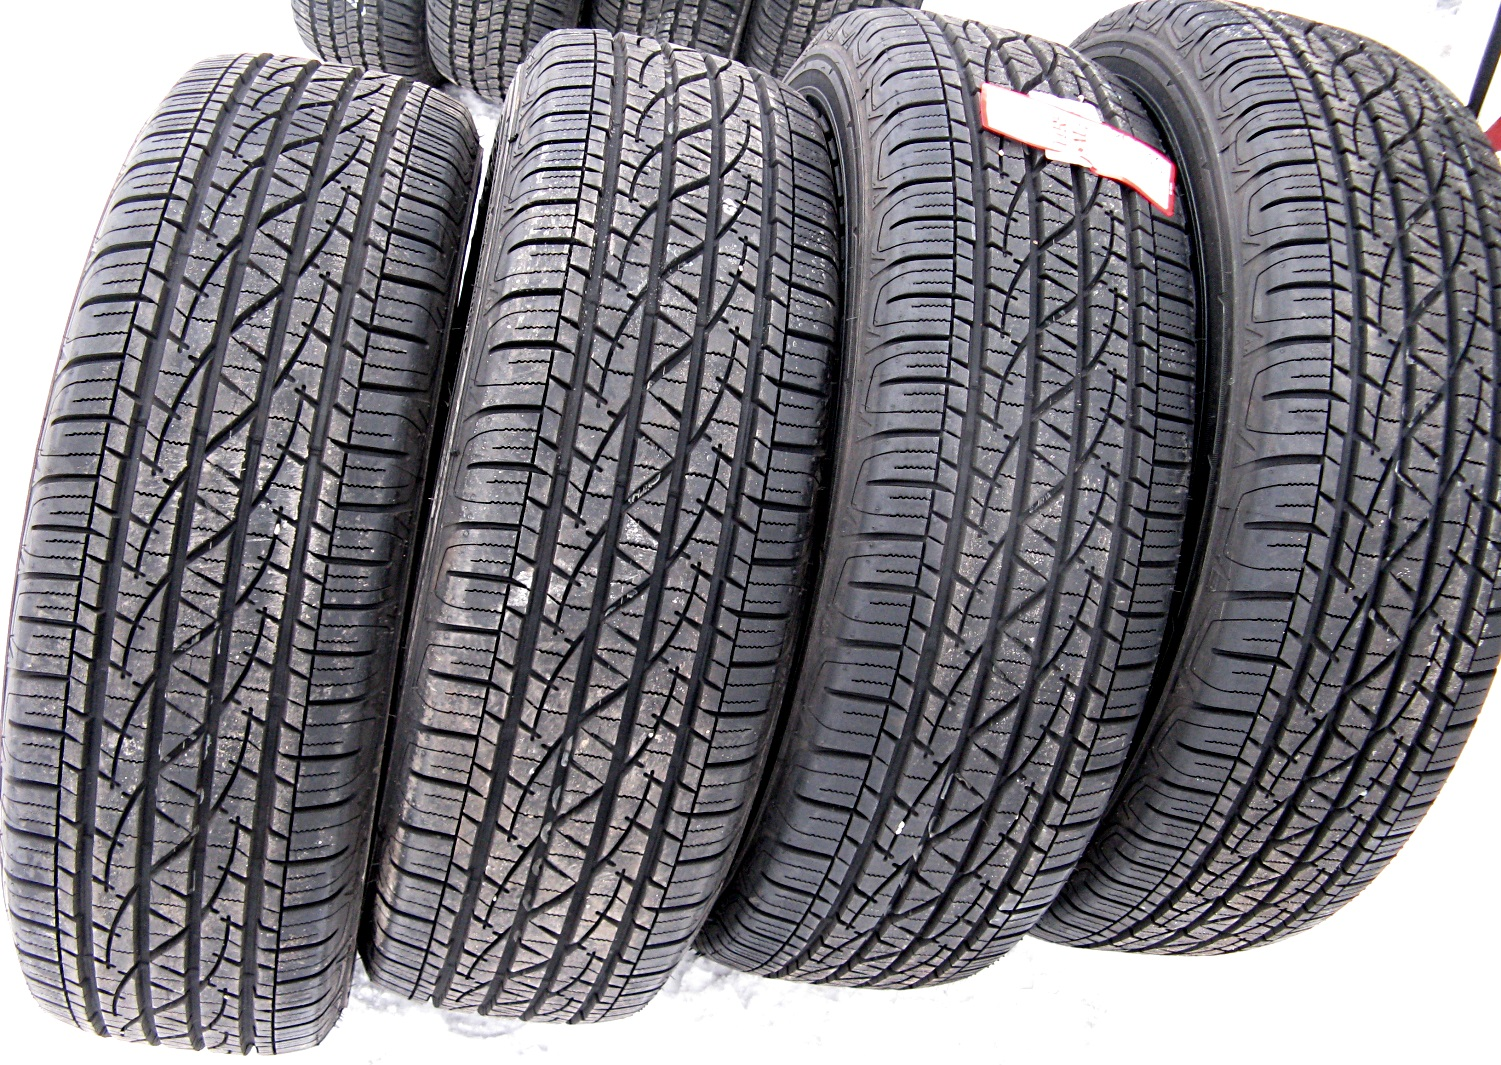 Firestone Suv Tires Reviews | 2017, 2018, 2019 Ford Price, Release Date, Reviews